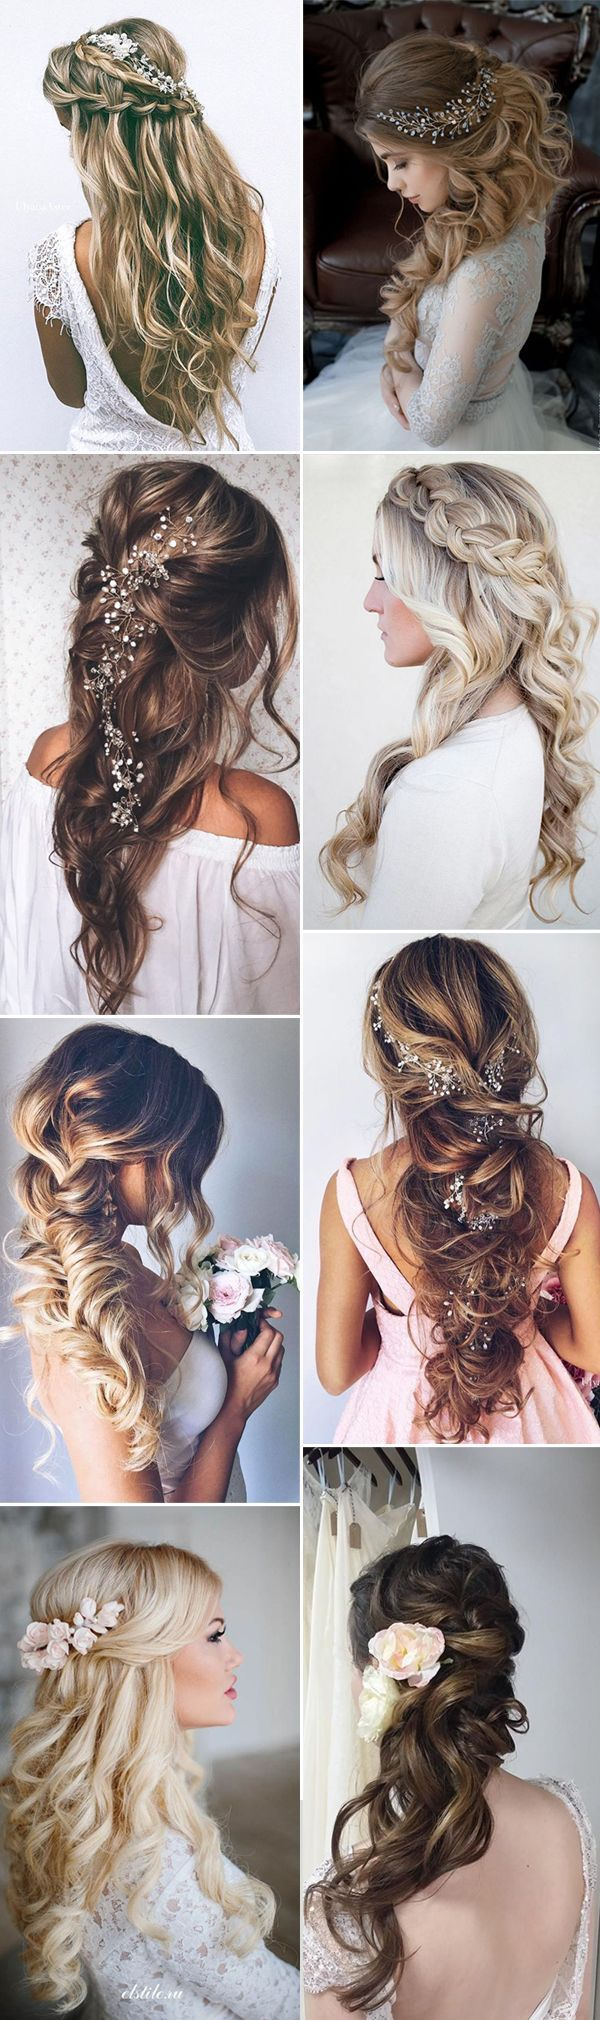 2017 06 homecoming hairstyles long hair - 2017 Wedding Long Hairstyles For Brides